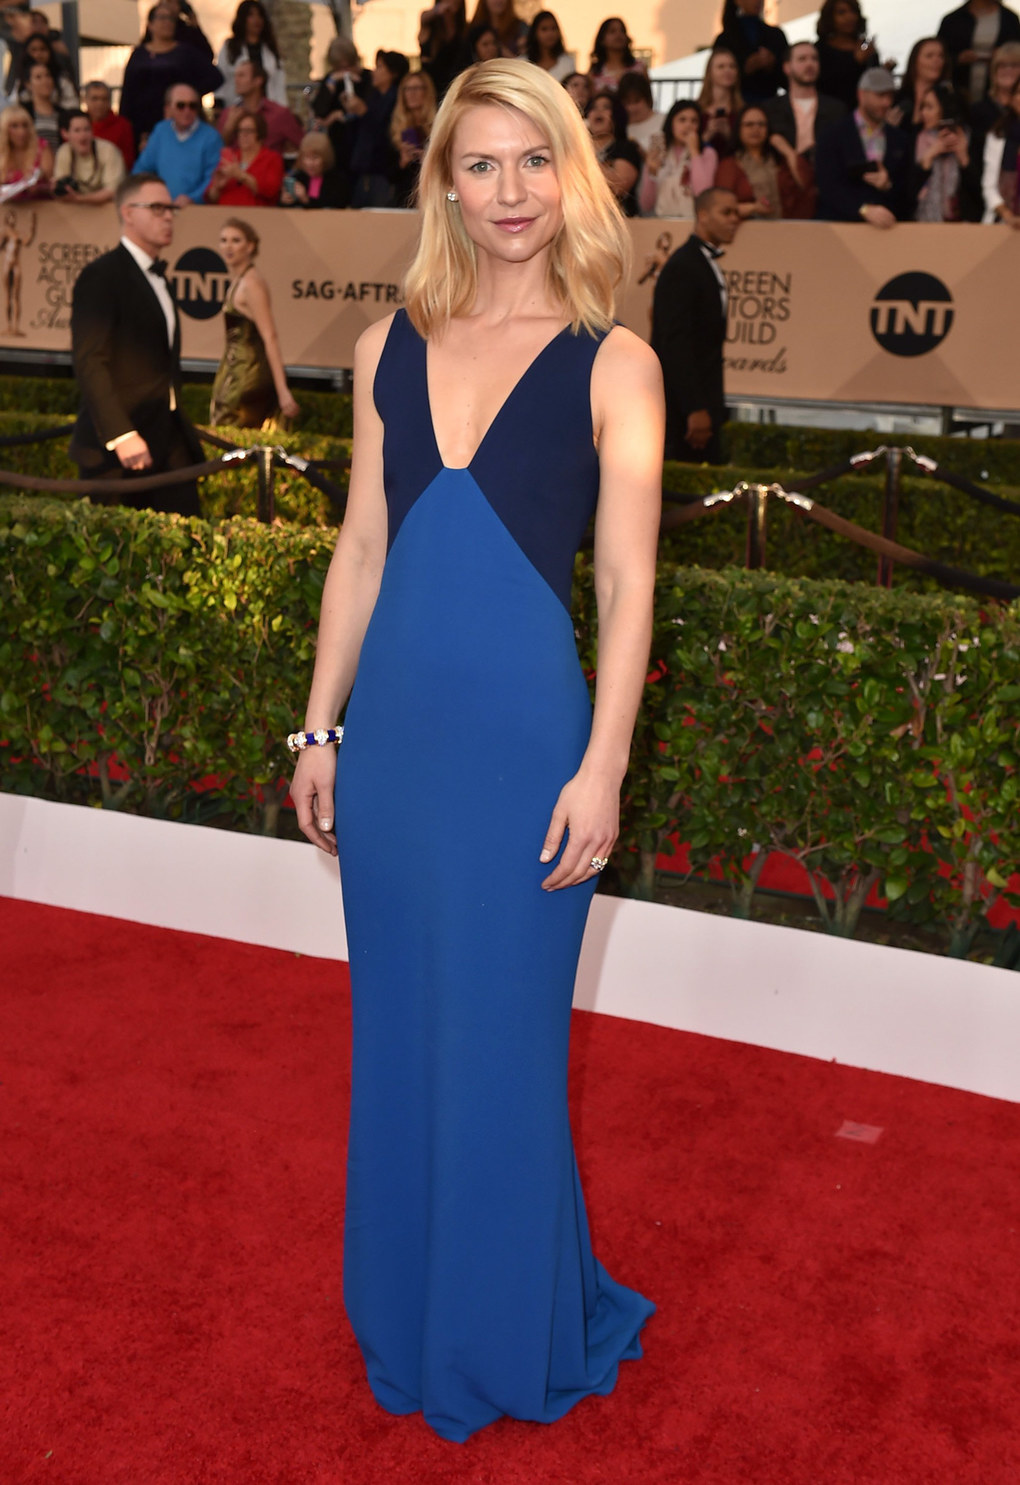 Claire Danes arrives at the 22nd annual Screen Actors Guild Awards at the Shrine Auditorium & Expo Hall on Saturday, Jan. 30, 2016, in Los Angeles. (Photo by Jordan Strauss/Invision/AP)